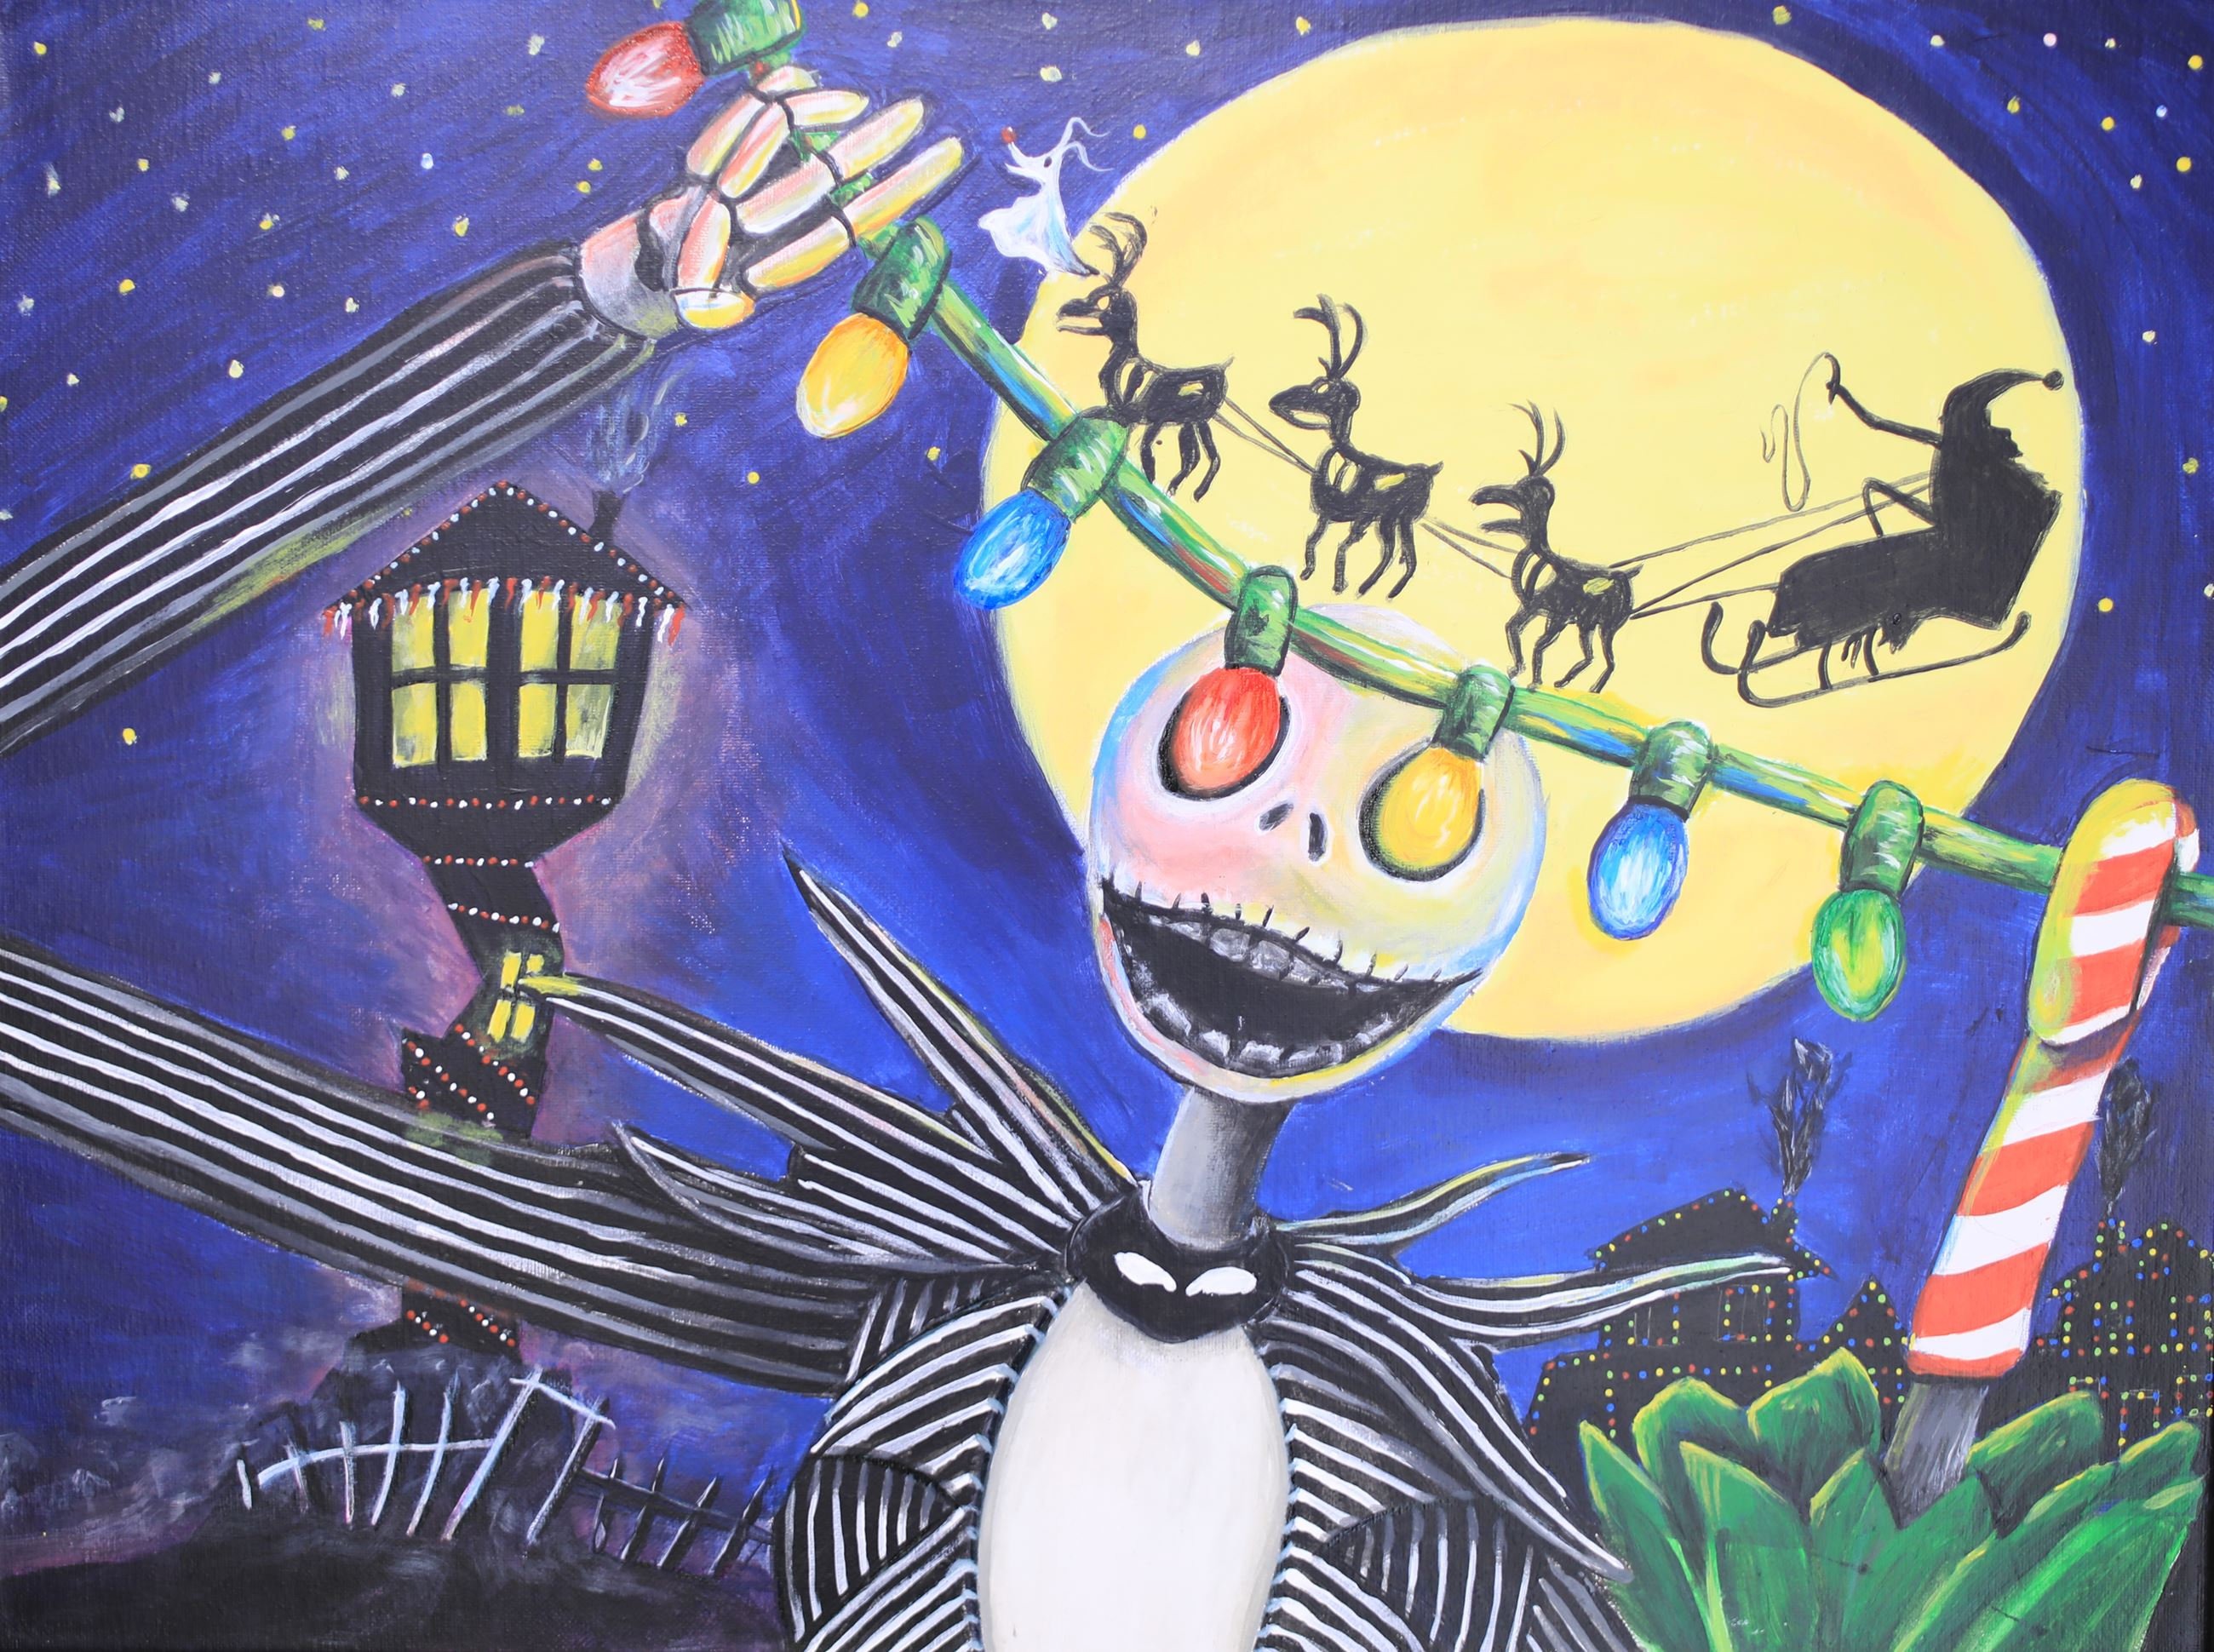 Nightmare Before Christmas character holding lights in front of the moon